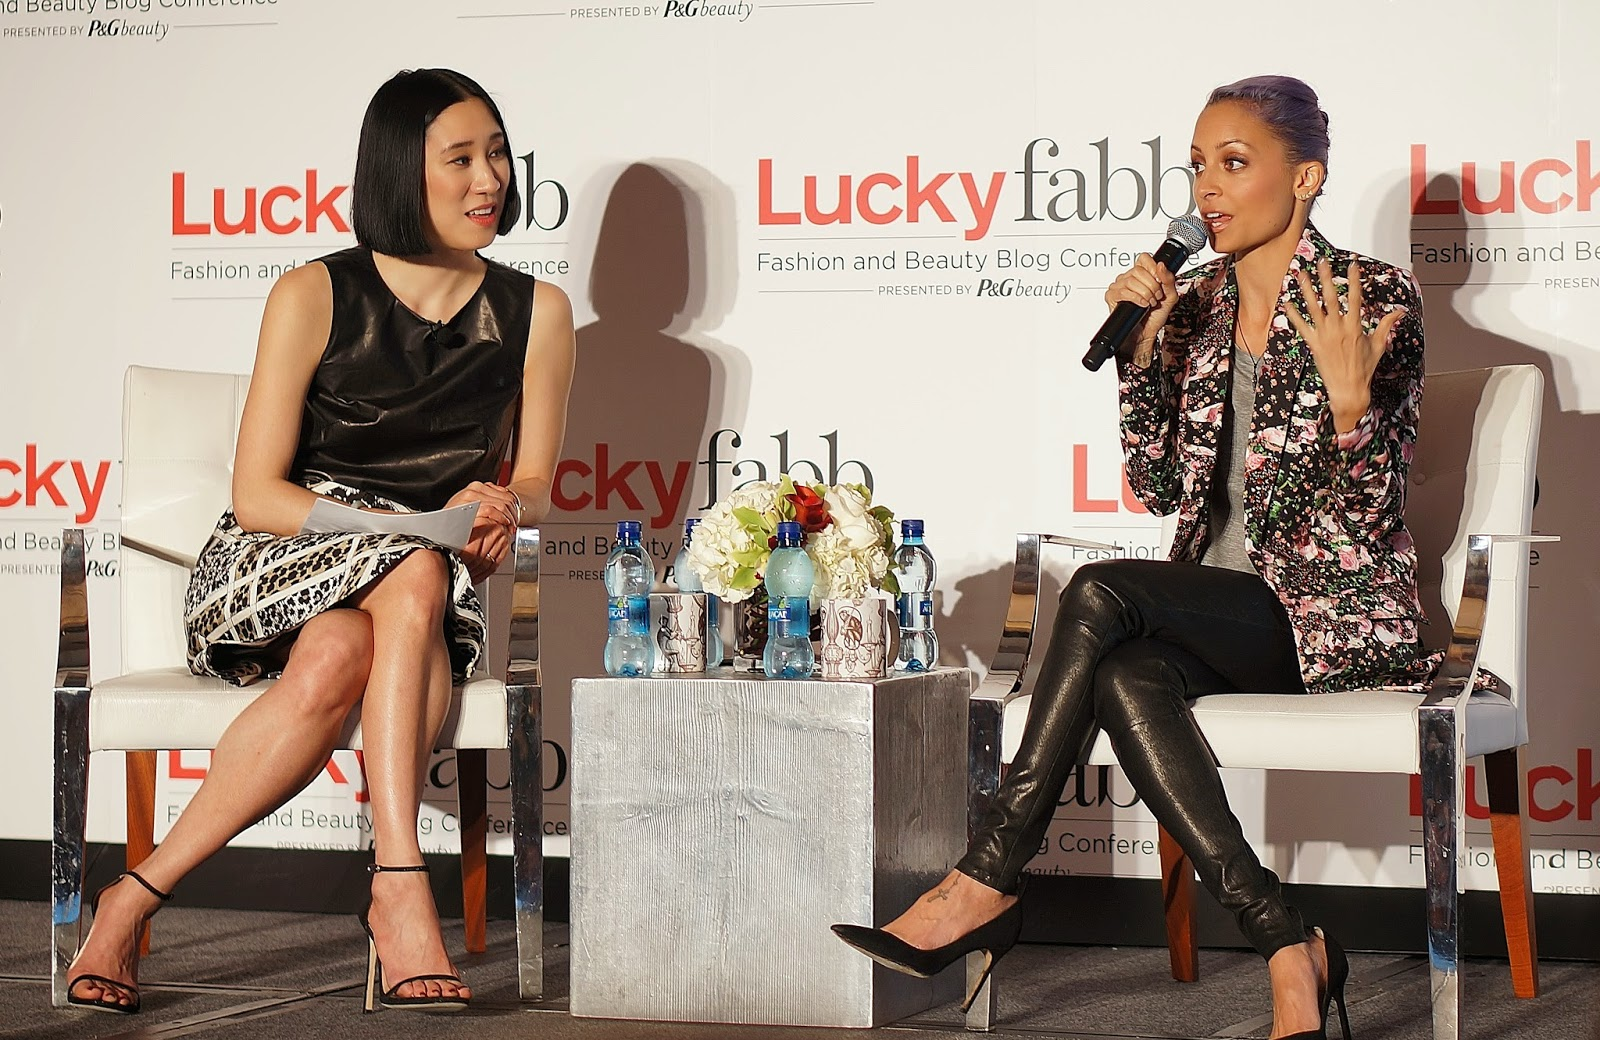 Lucky Fabb, Lucky Fabb 2014, Lucky Fabb West, Lucky Fabb L.A., Lucky Fabb Fashion and Beauty Blog Conference, Lucky Magazine Event, Fashion Blogger, Nicole Richie